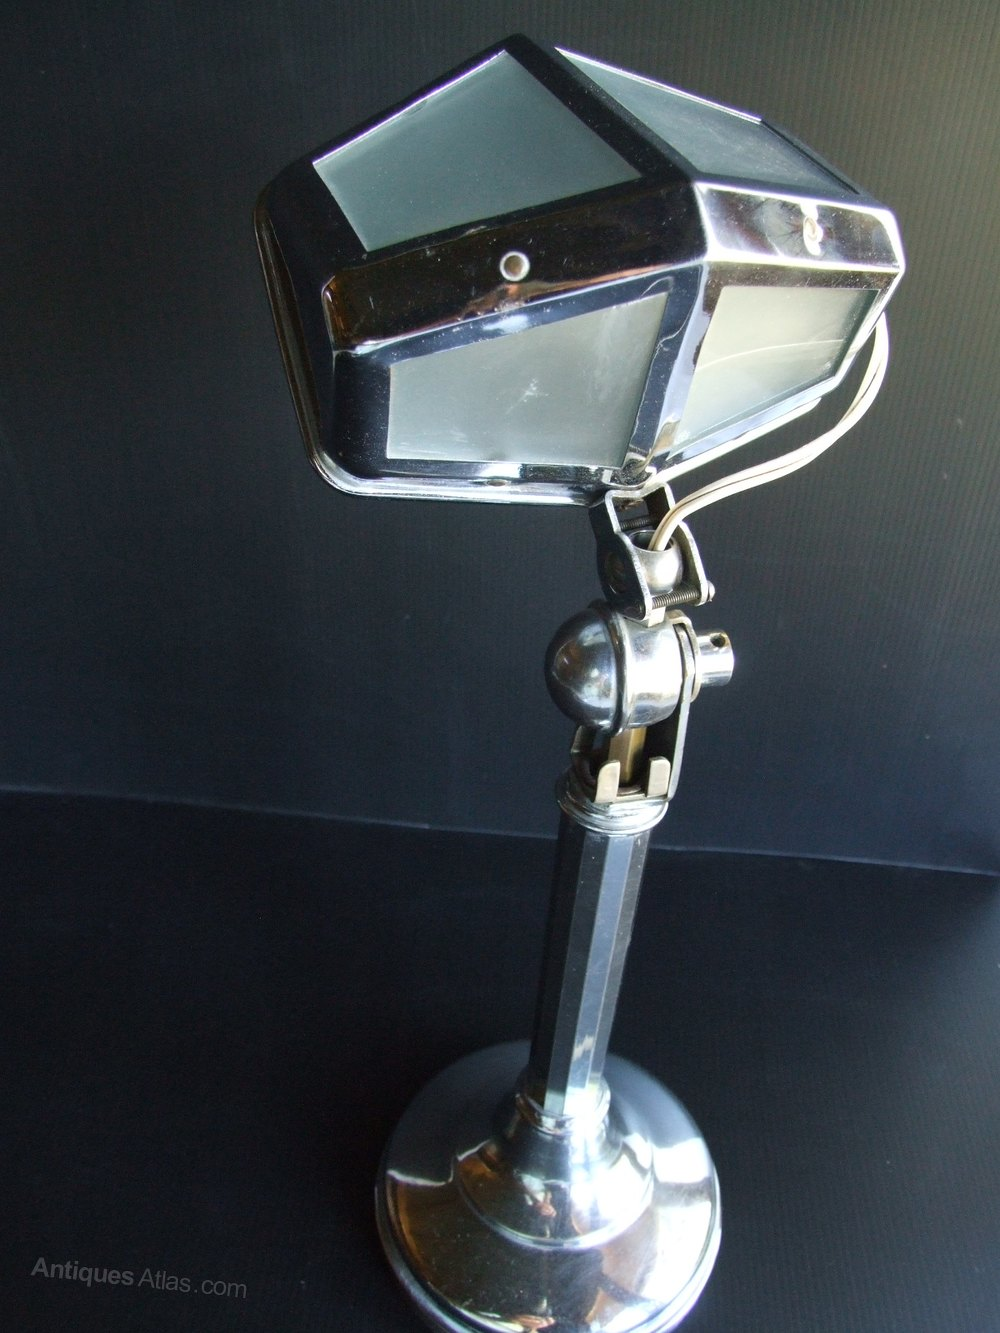 Used Desk For Sale >> Antiques Atlas - Art Deco Desk Lamp By Pirouette.